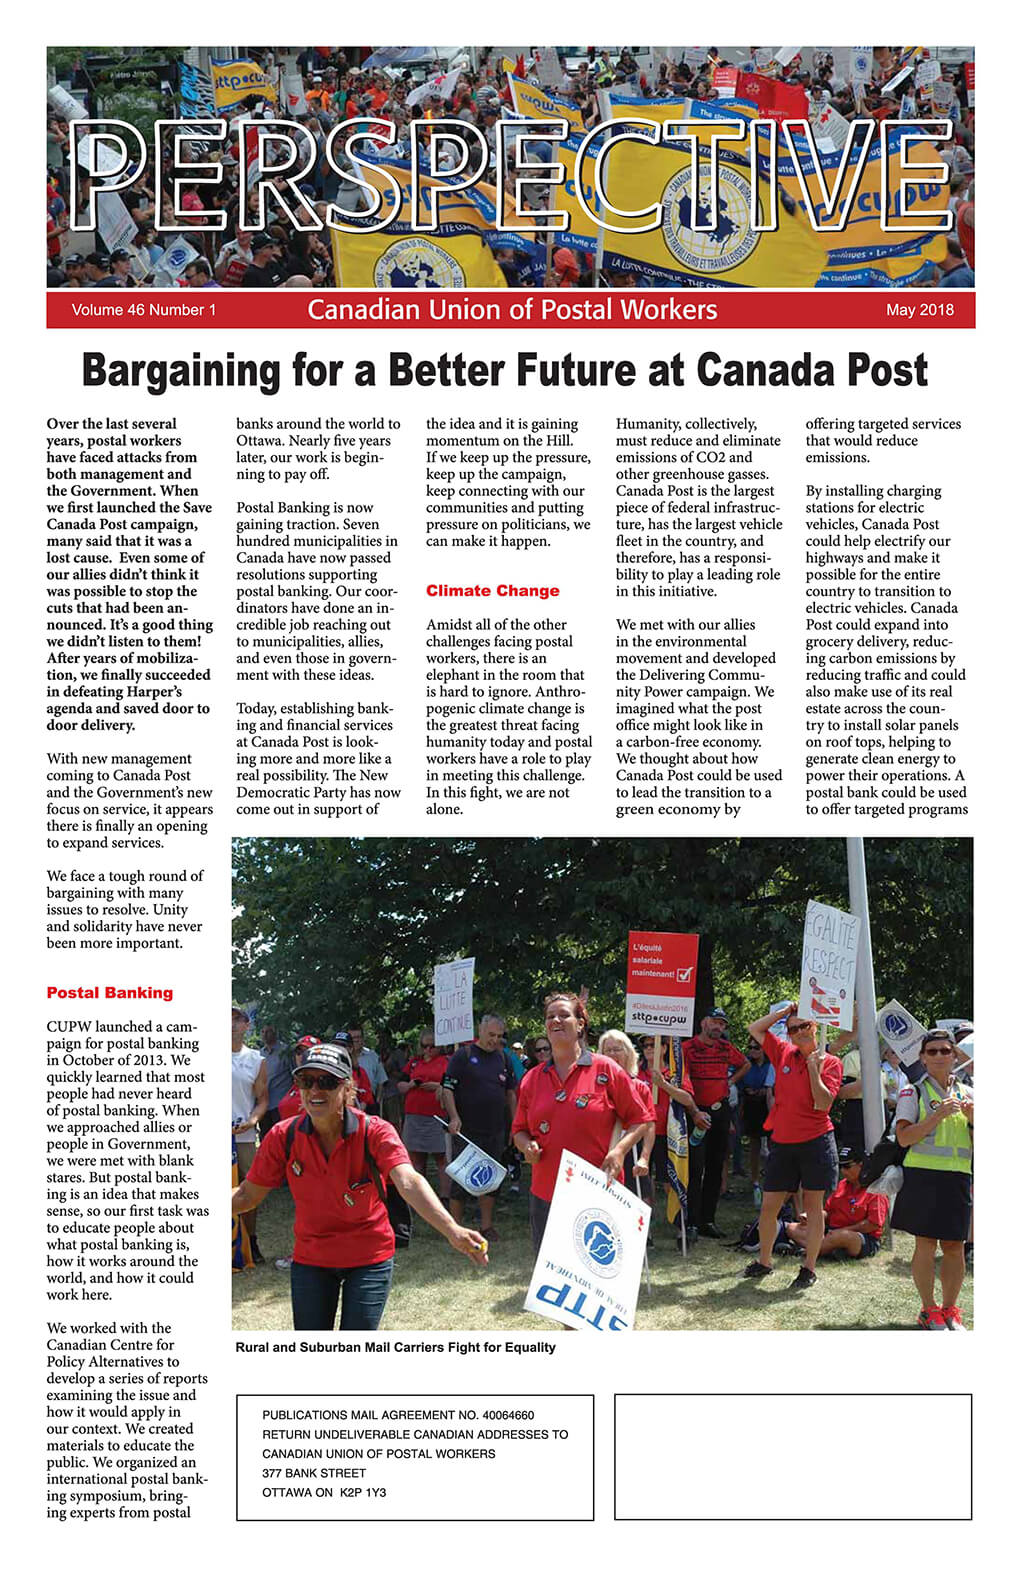 CUPW Perspective (May 2018)